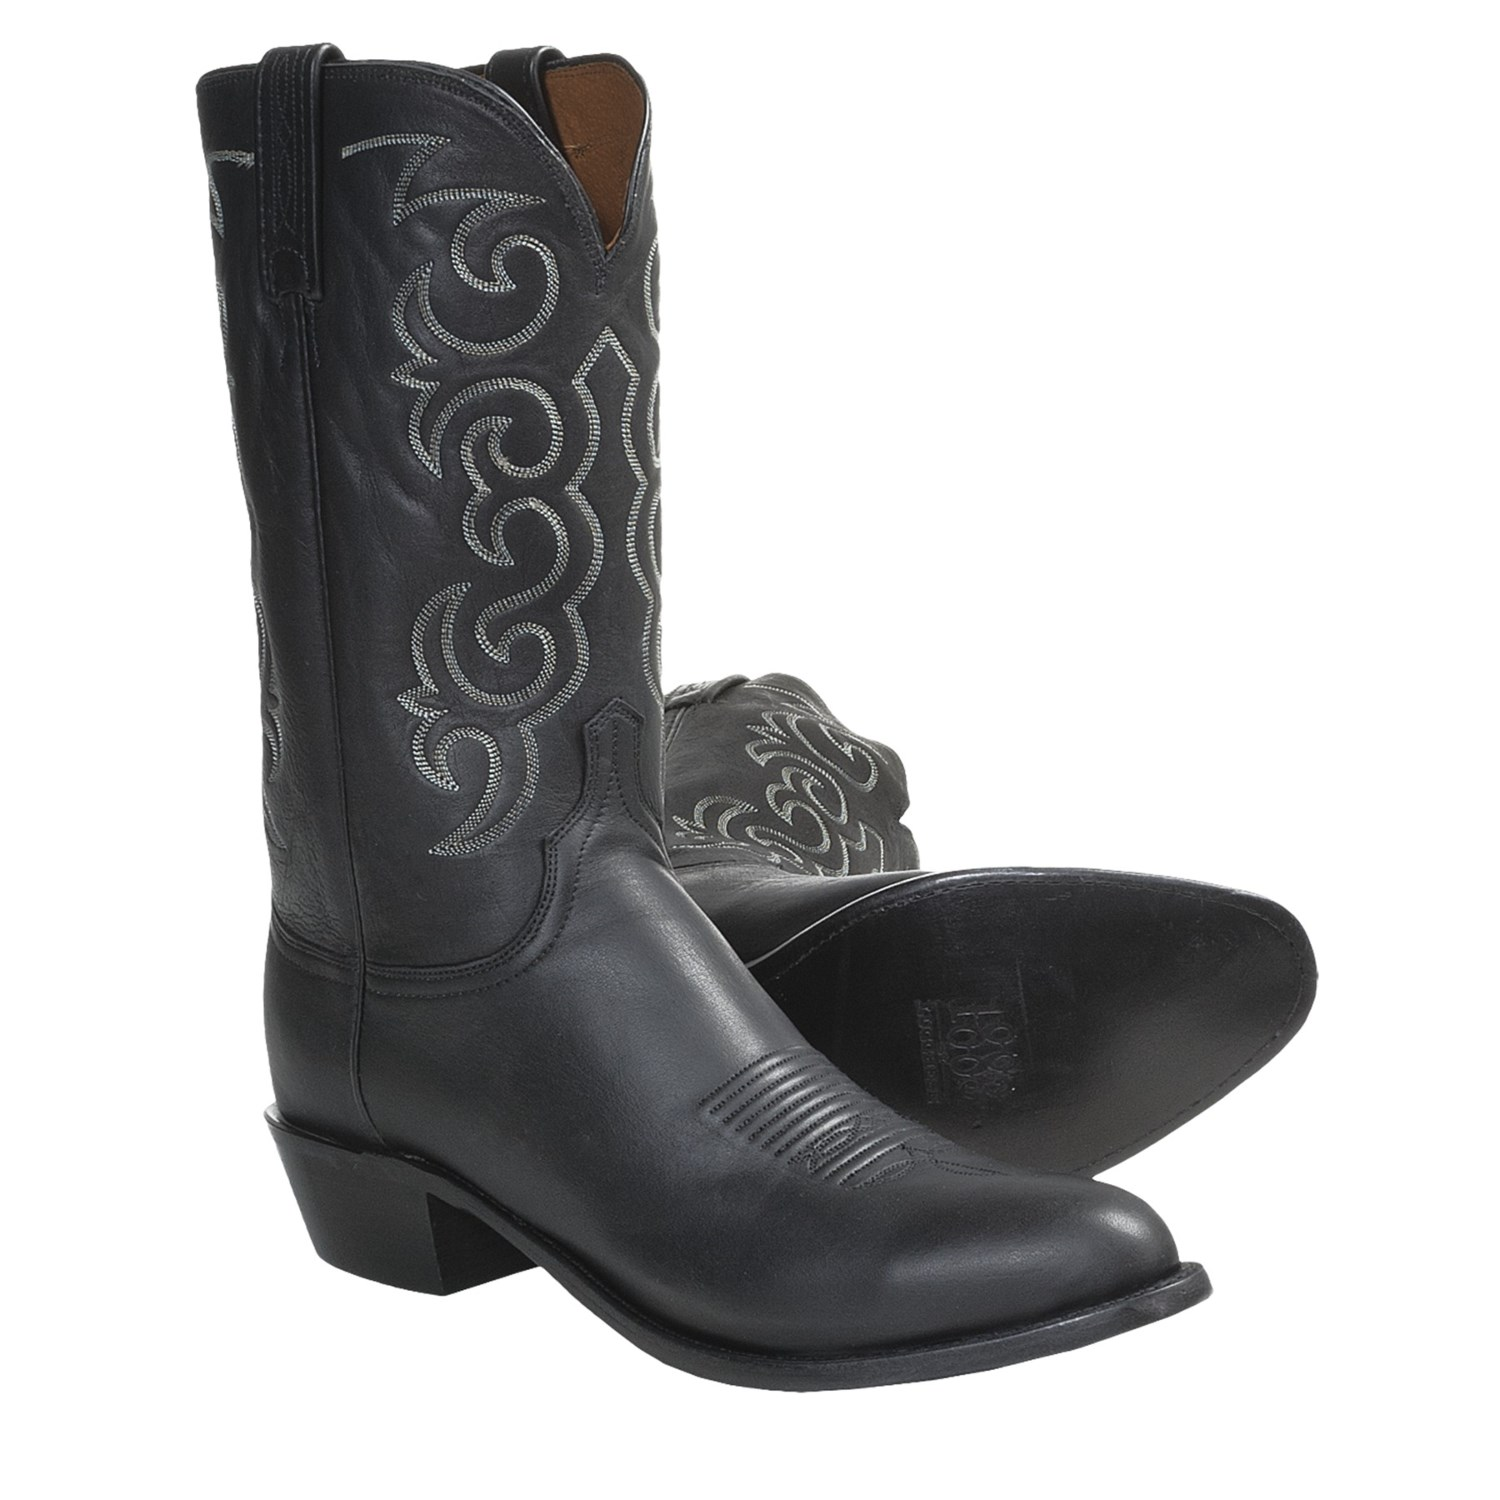 Lucchese Cowboy Boots On Sale